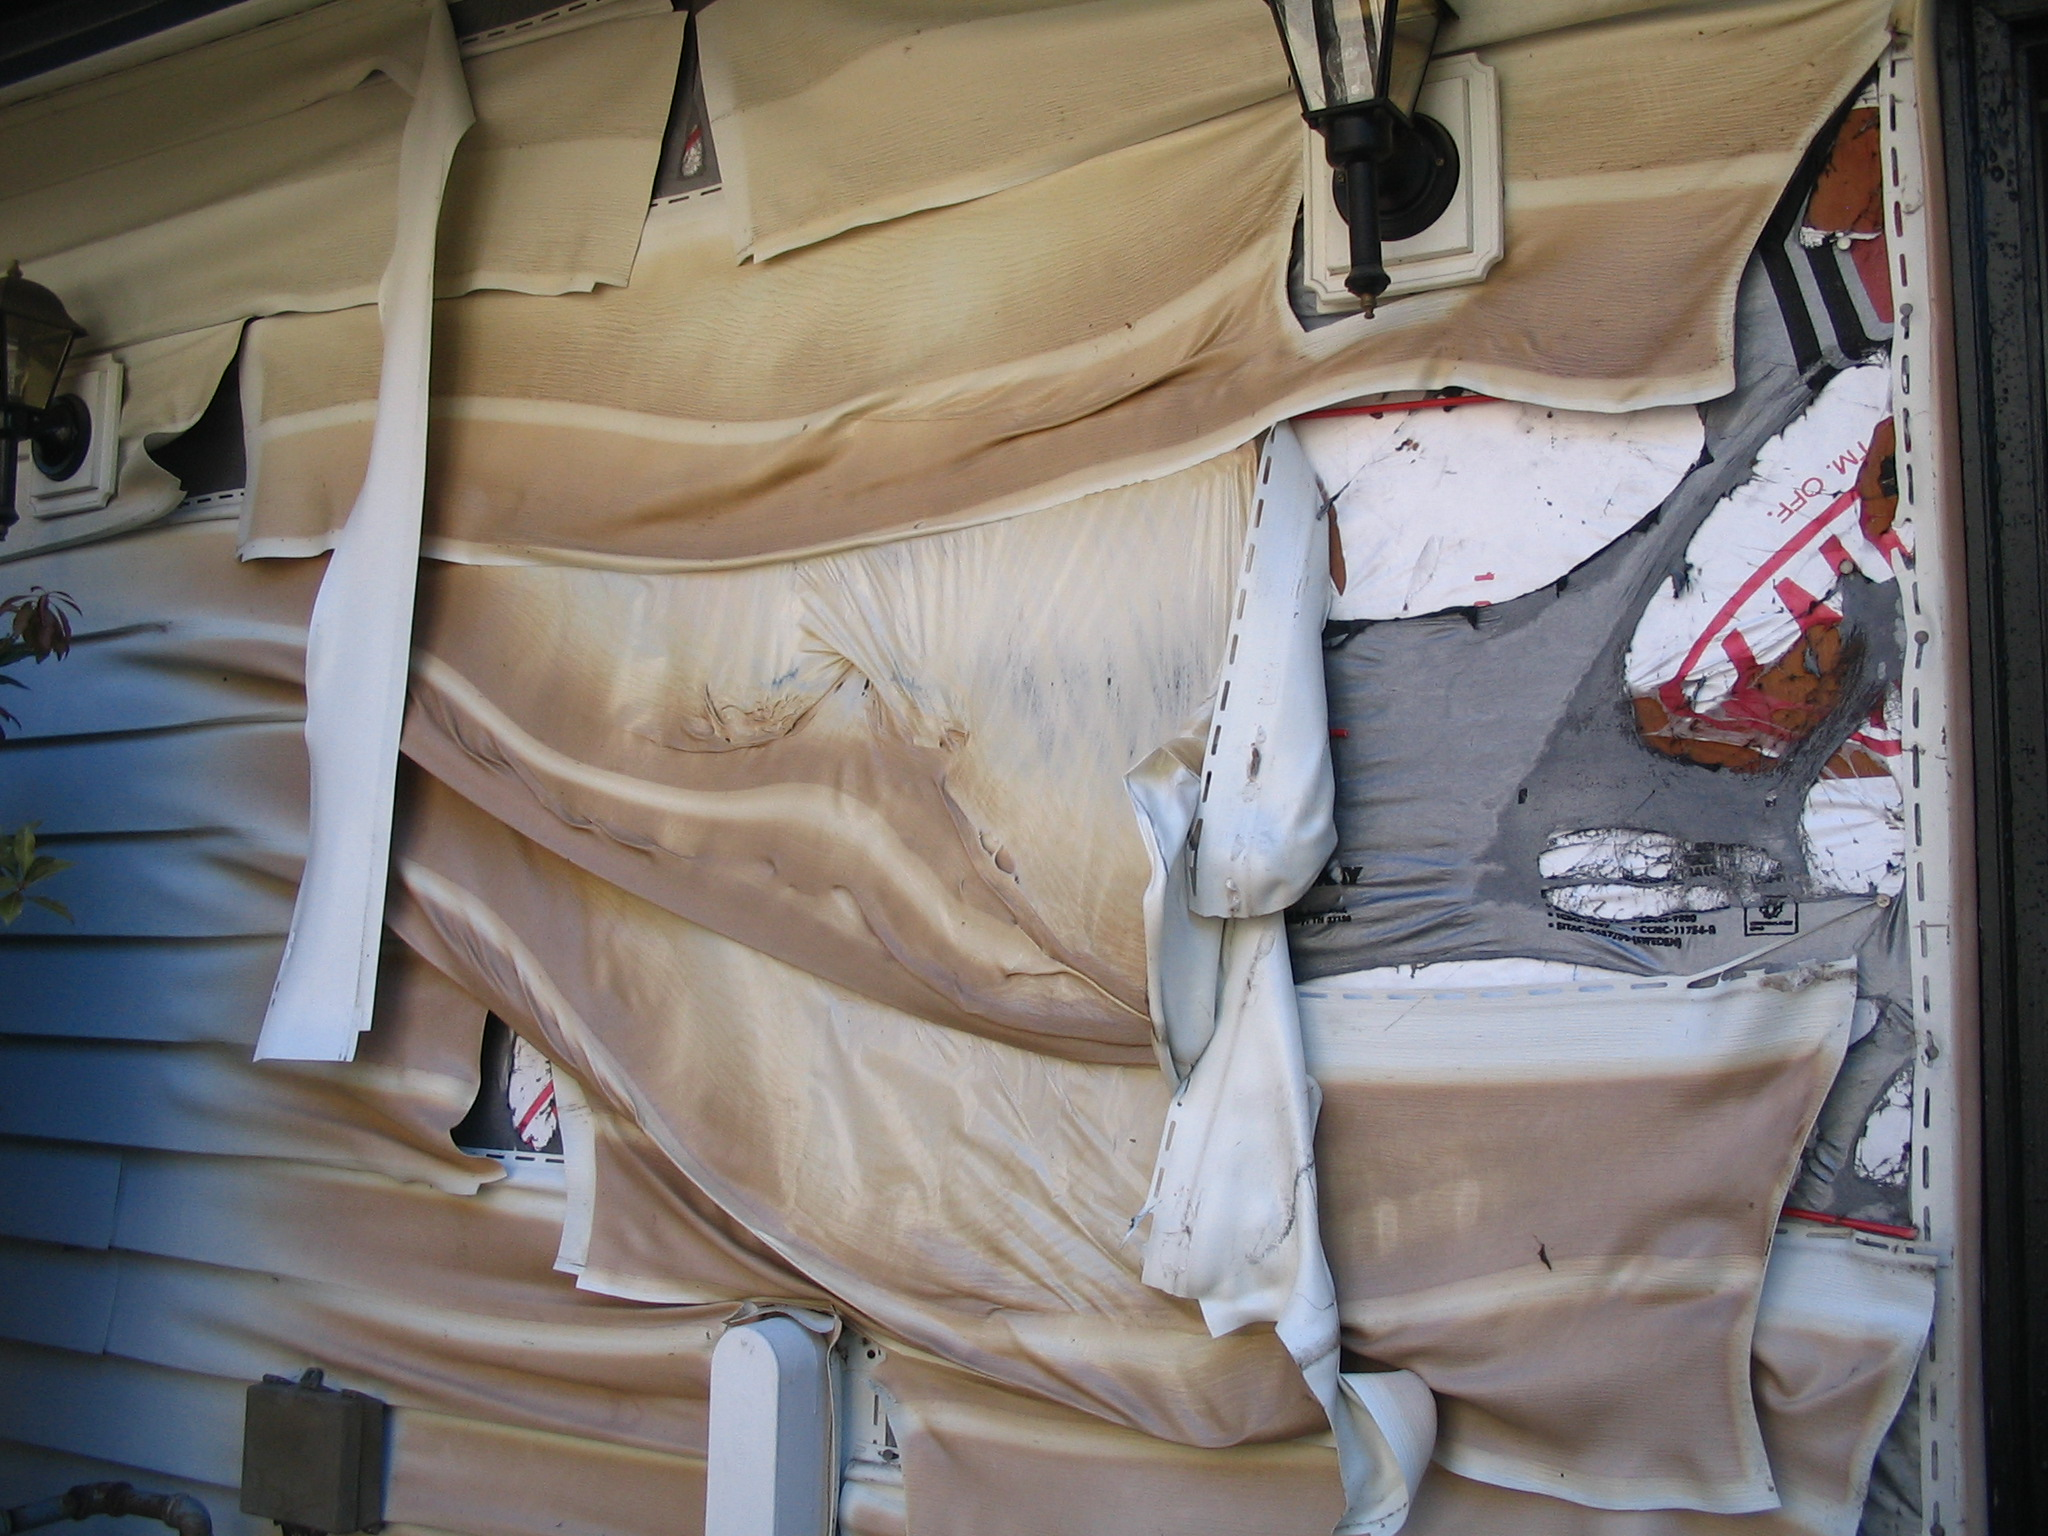 (c)2009 Em https://diabetesdietdialogue.wordpress.com 2009-6  Our Fire - damage at the main electrical panel